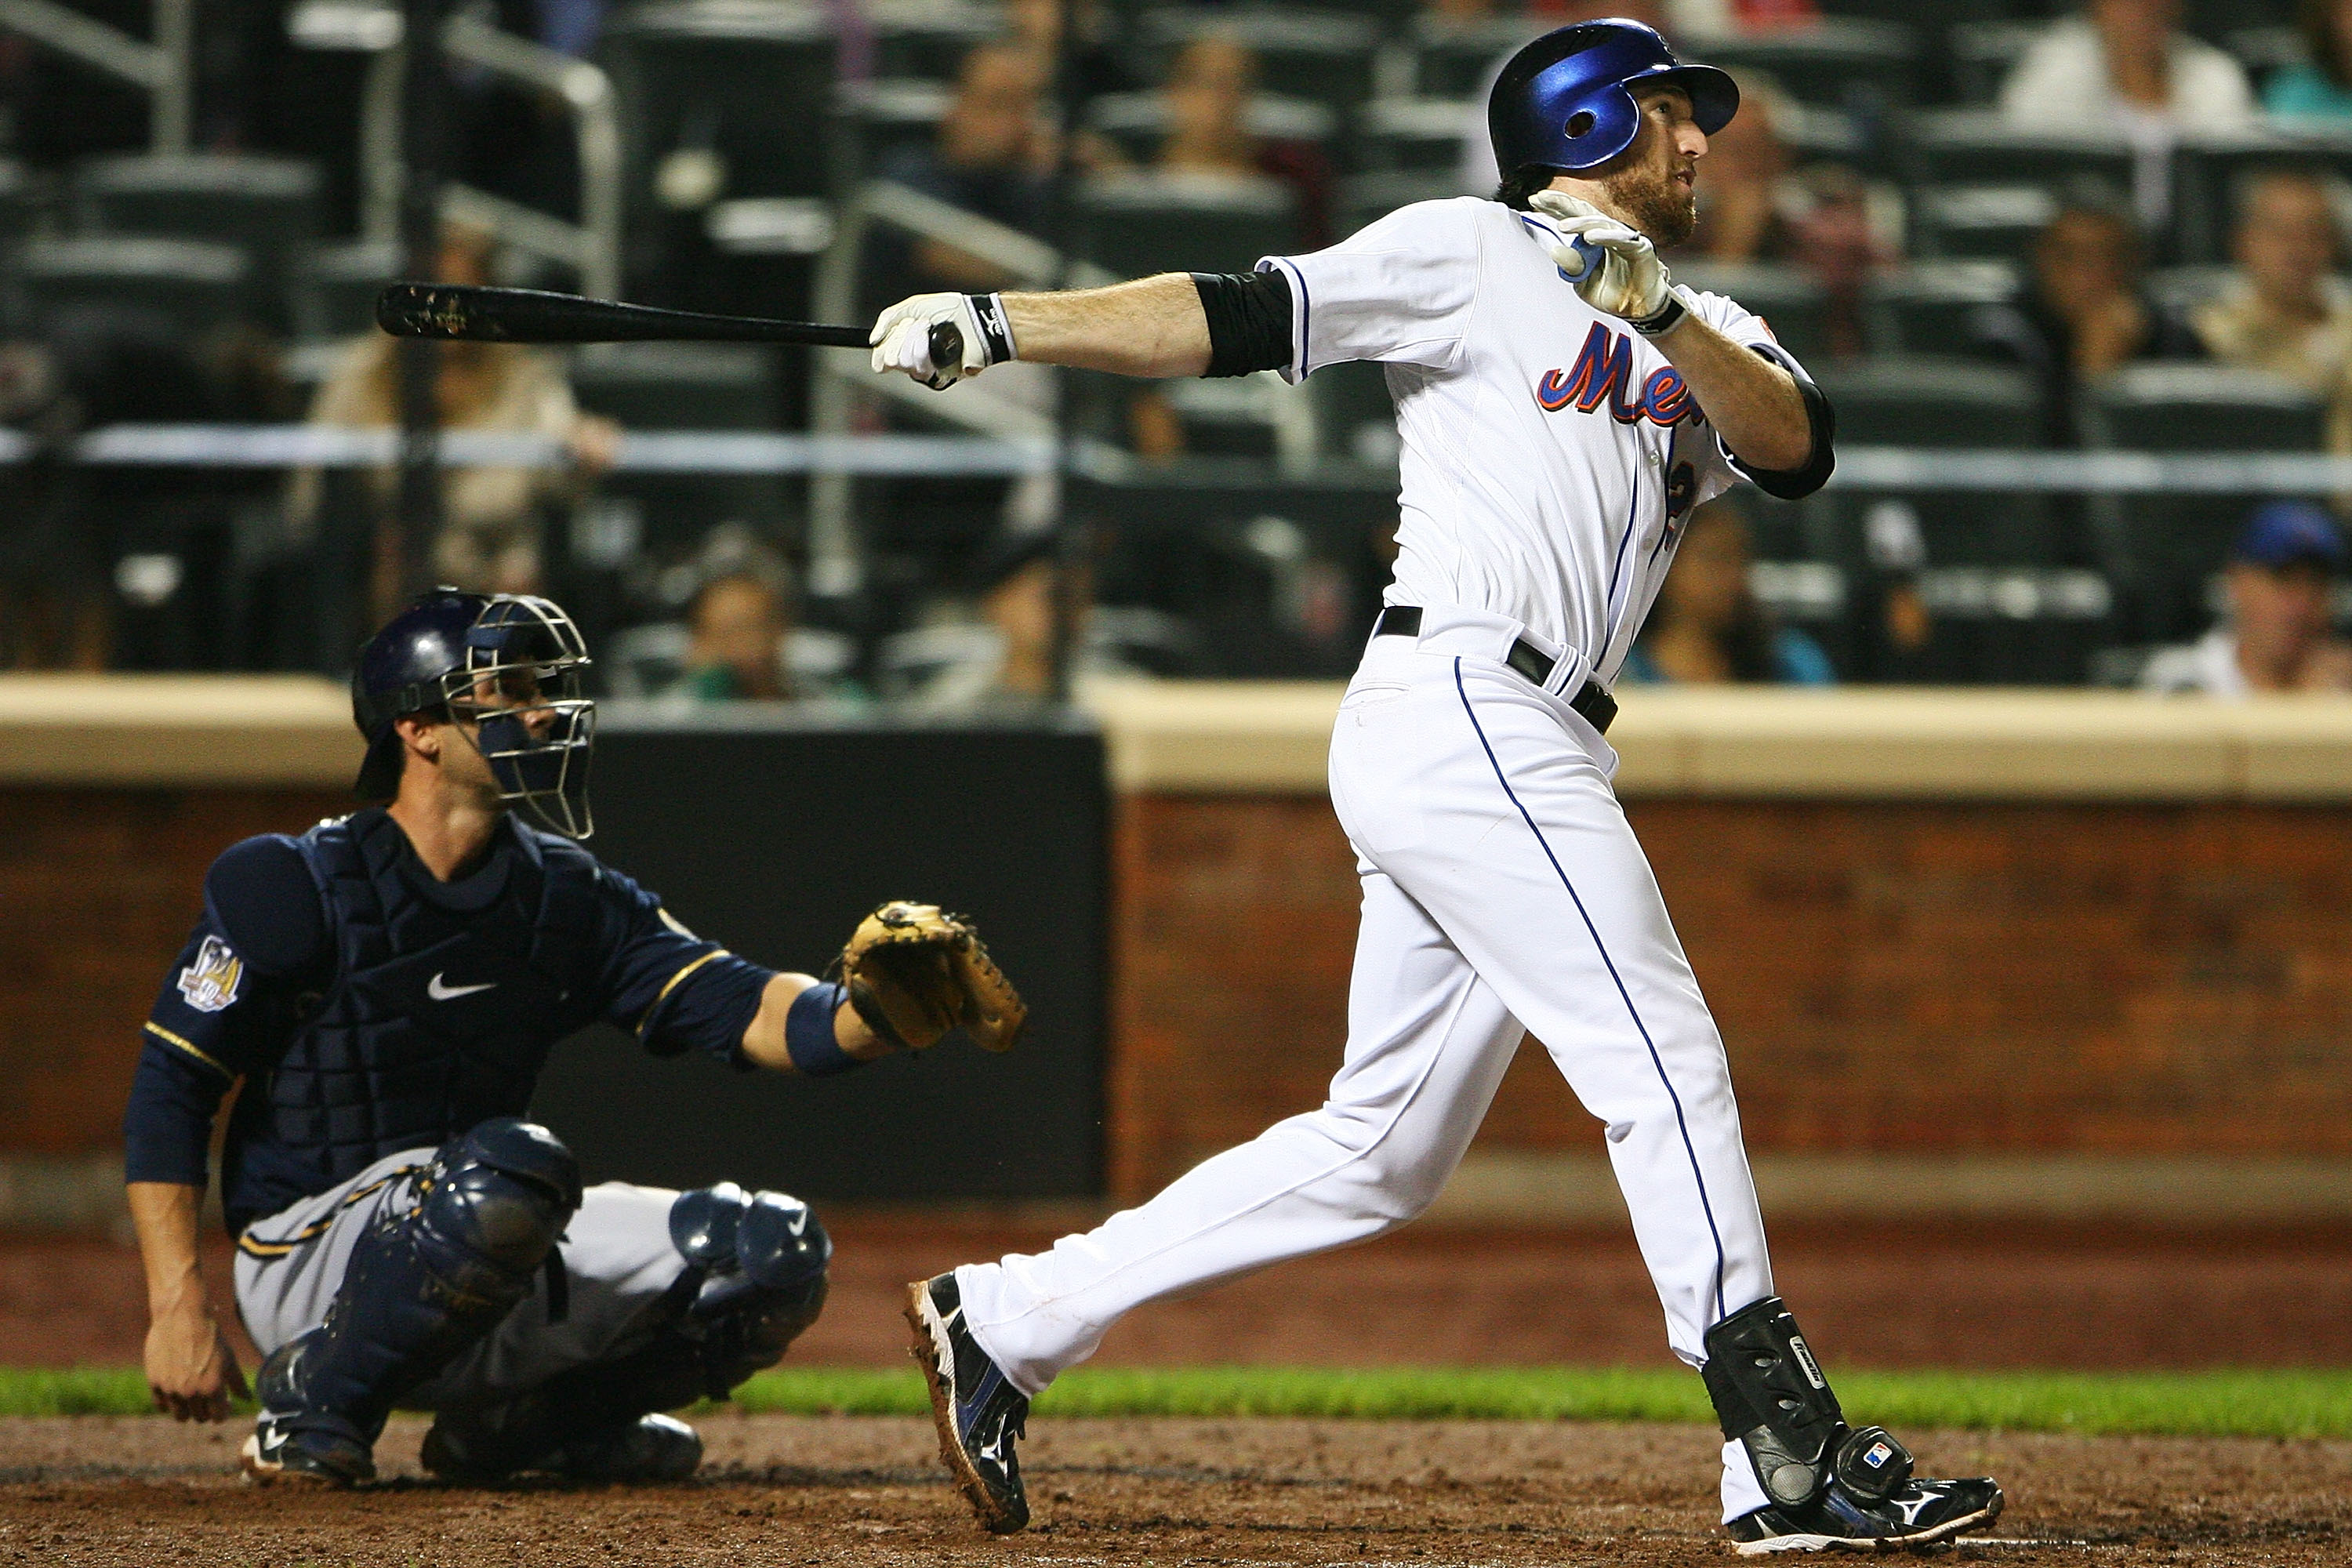 Ike Davis is the Mets future at 1B